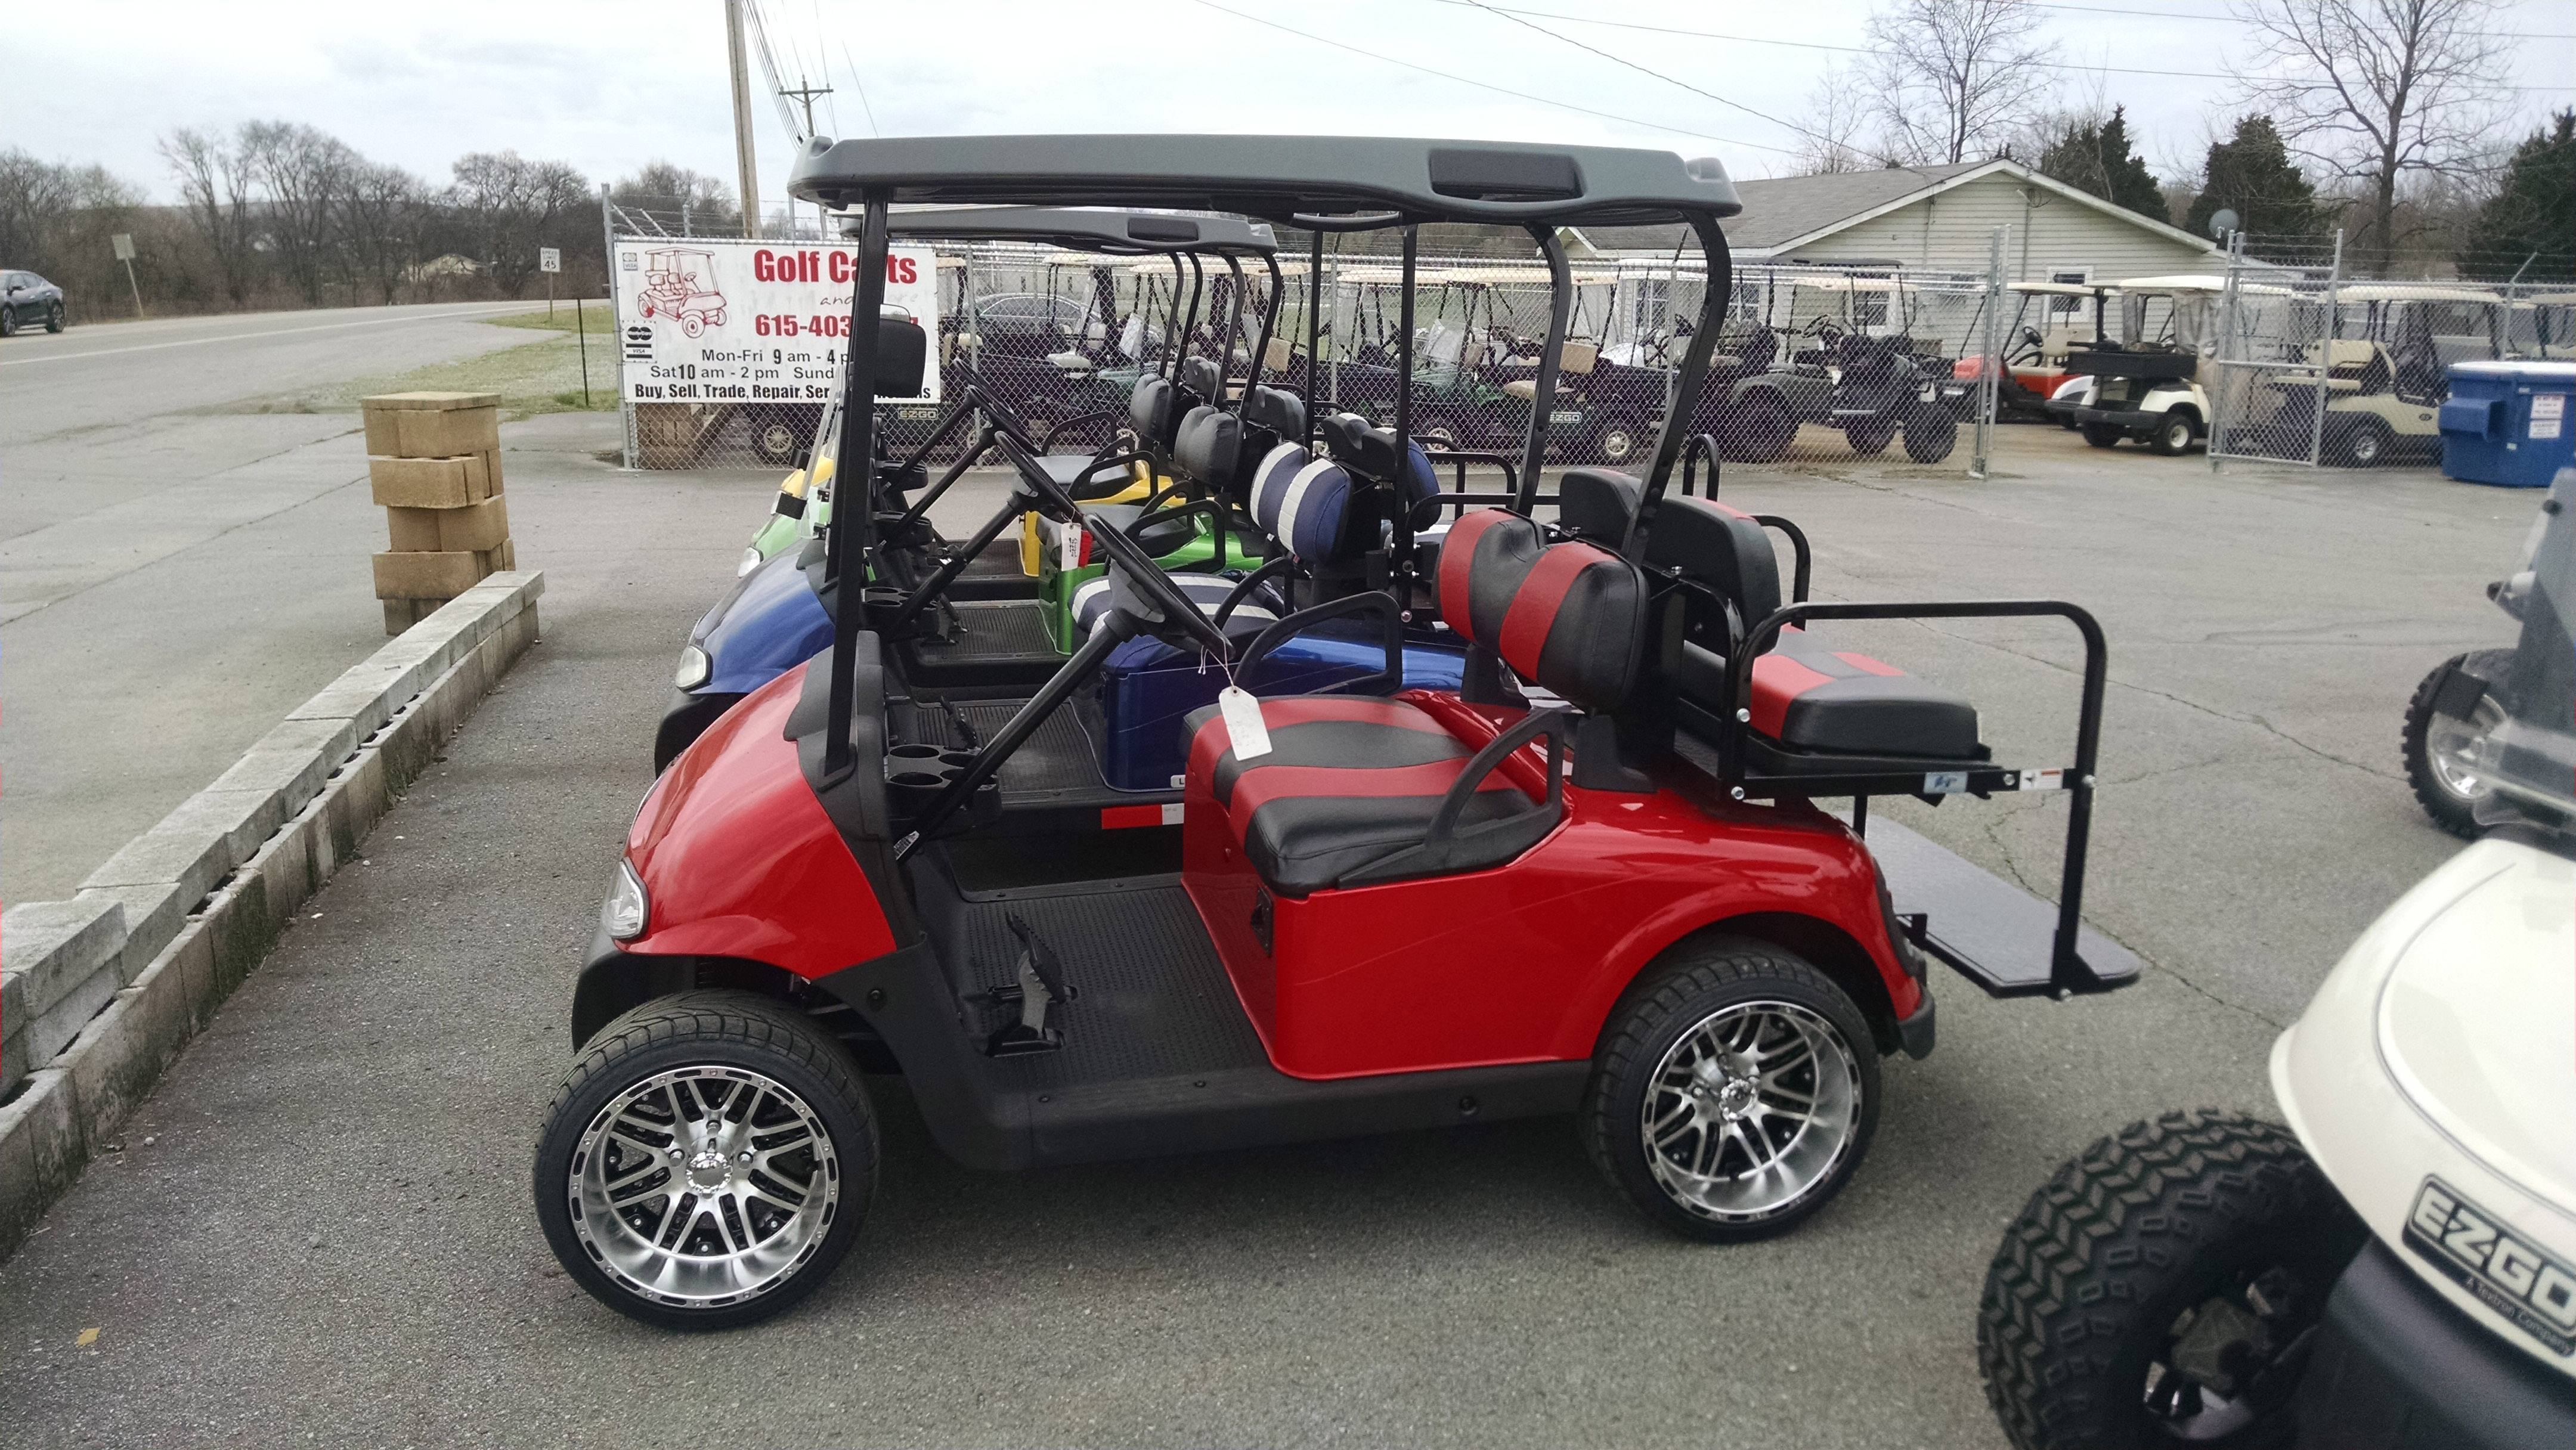 Golf Carts Murfreesboro And Nashville Tennessee Call Today 615 403 7037